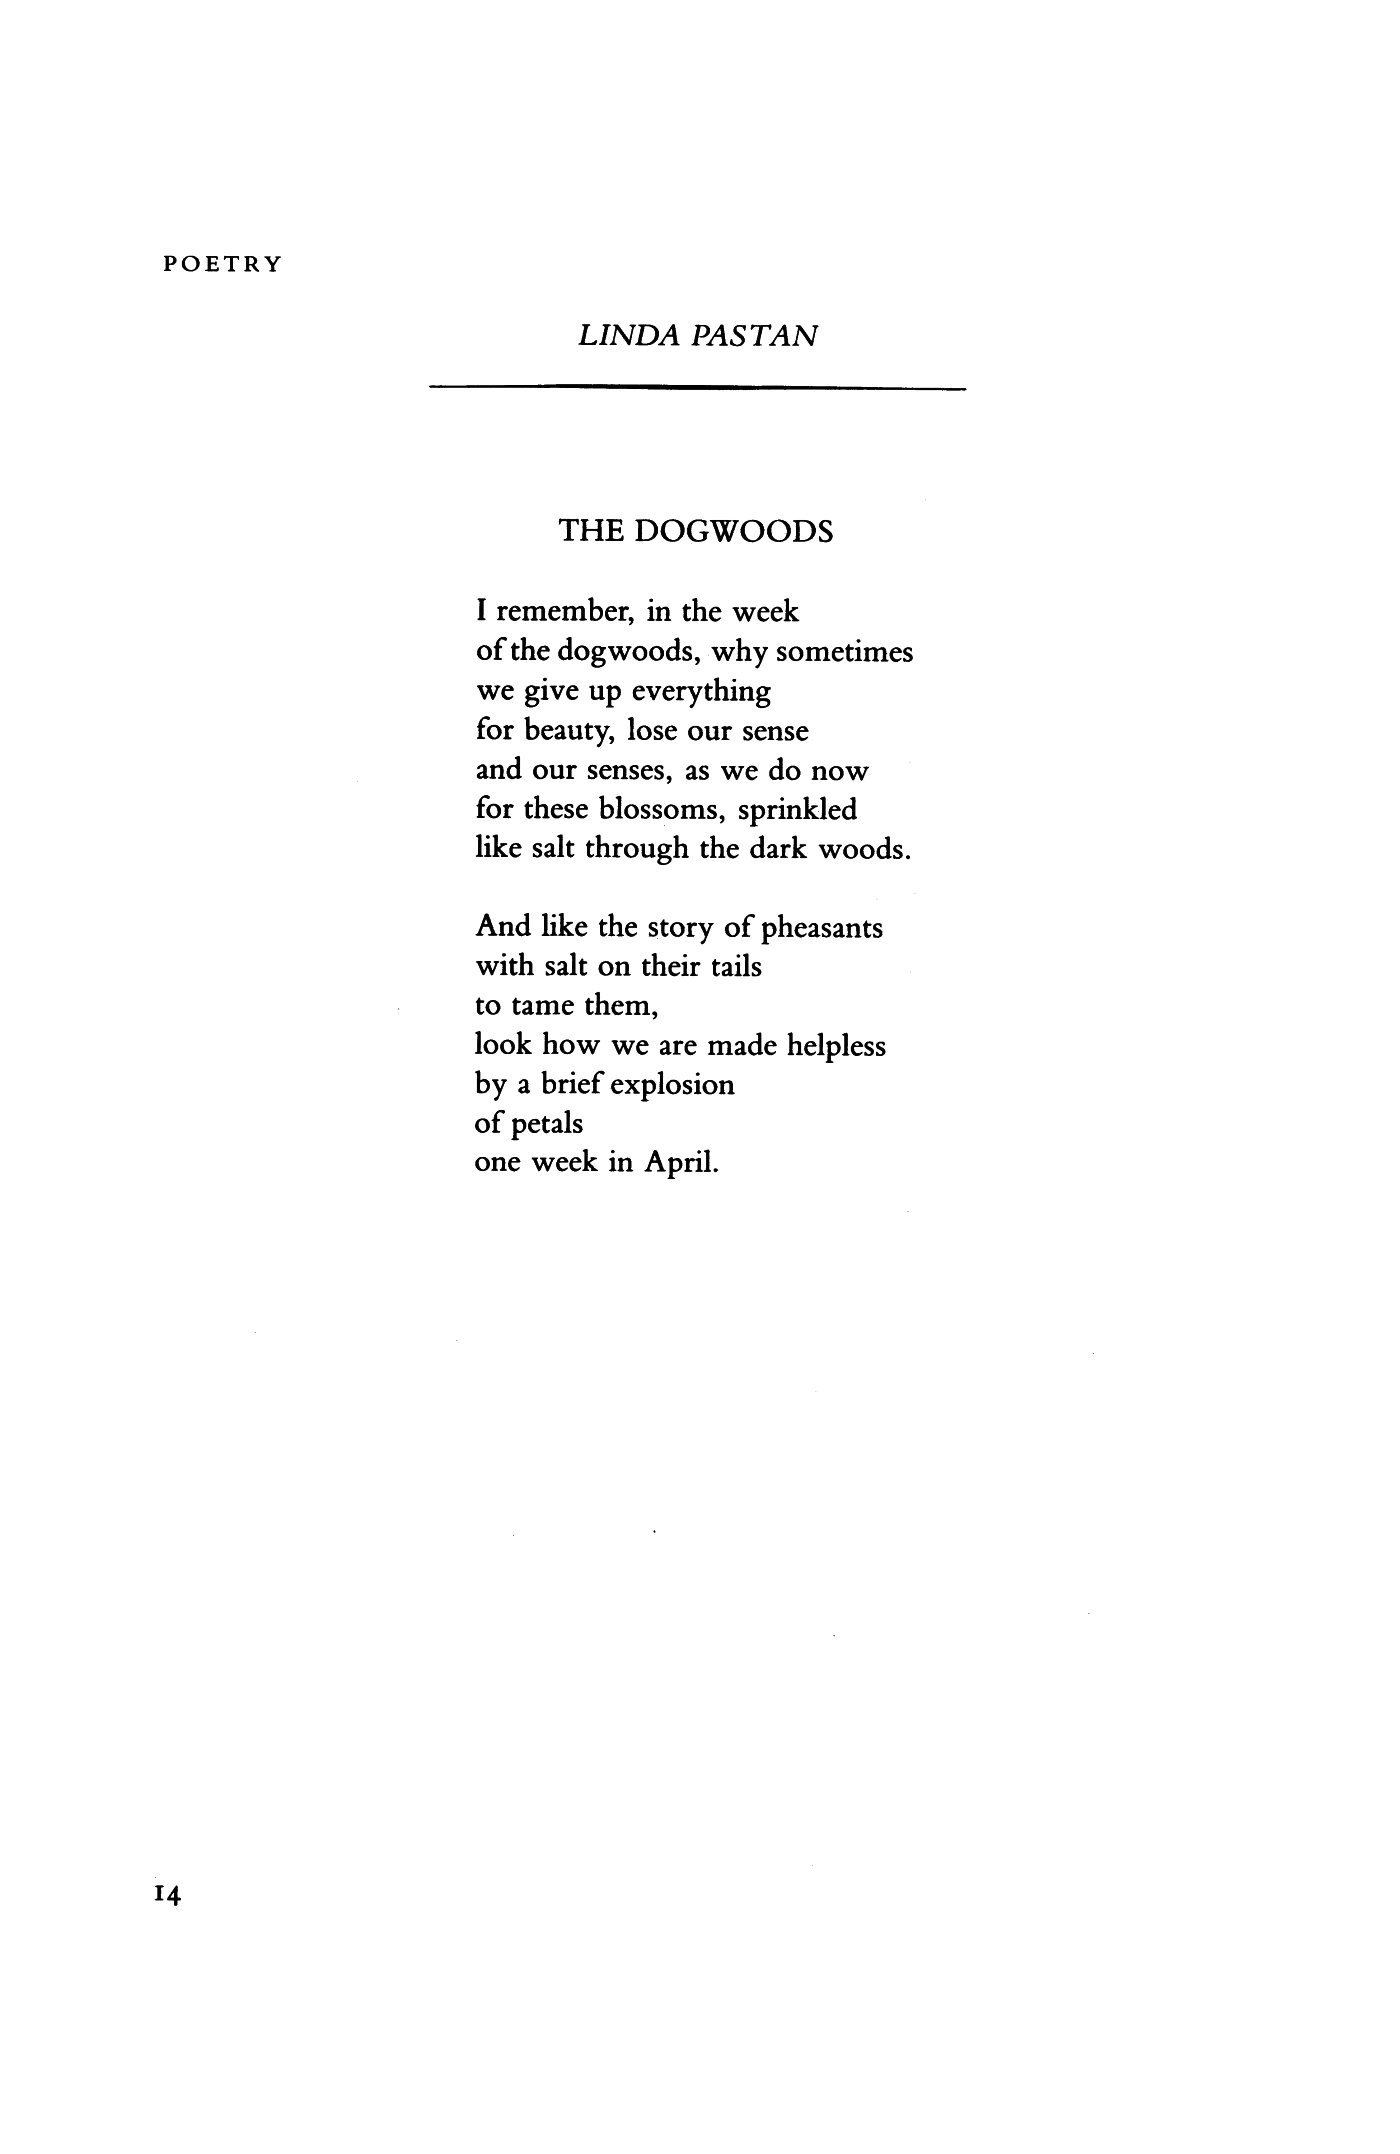 linda pastan To a daughter leaving home, by linda pastan - poem 075 of poetry 180: a poem a day for american high schools, hosted by billy collins, us poet laureate, 2001-2003 (poetry and literature.